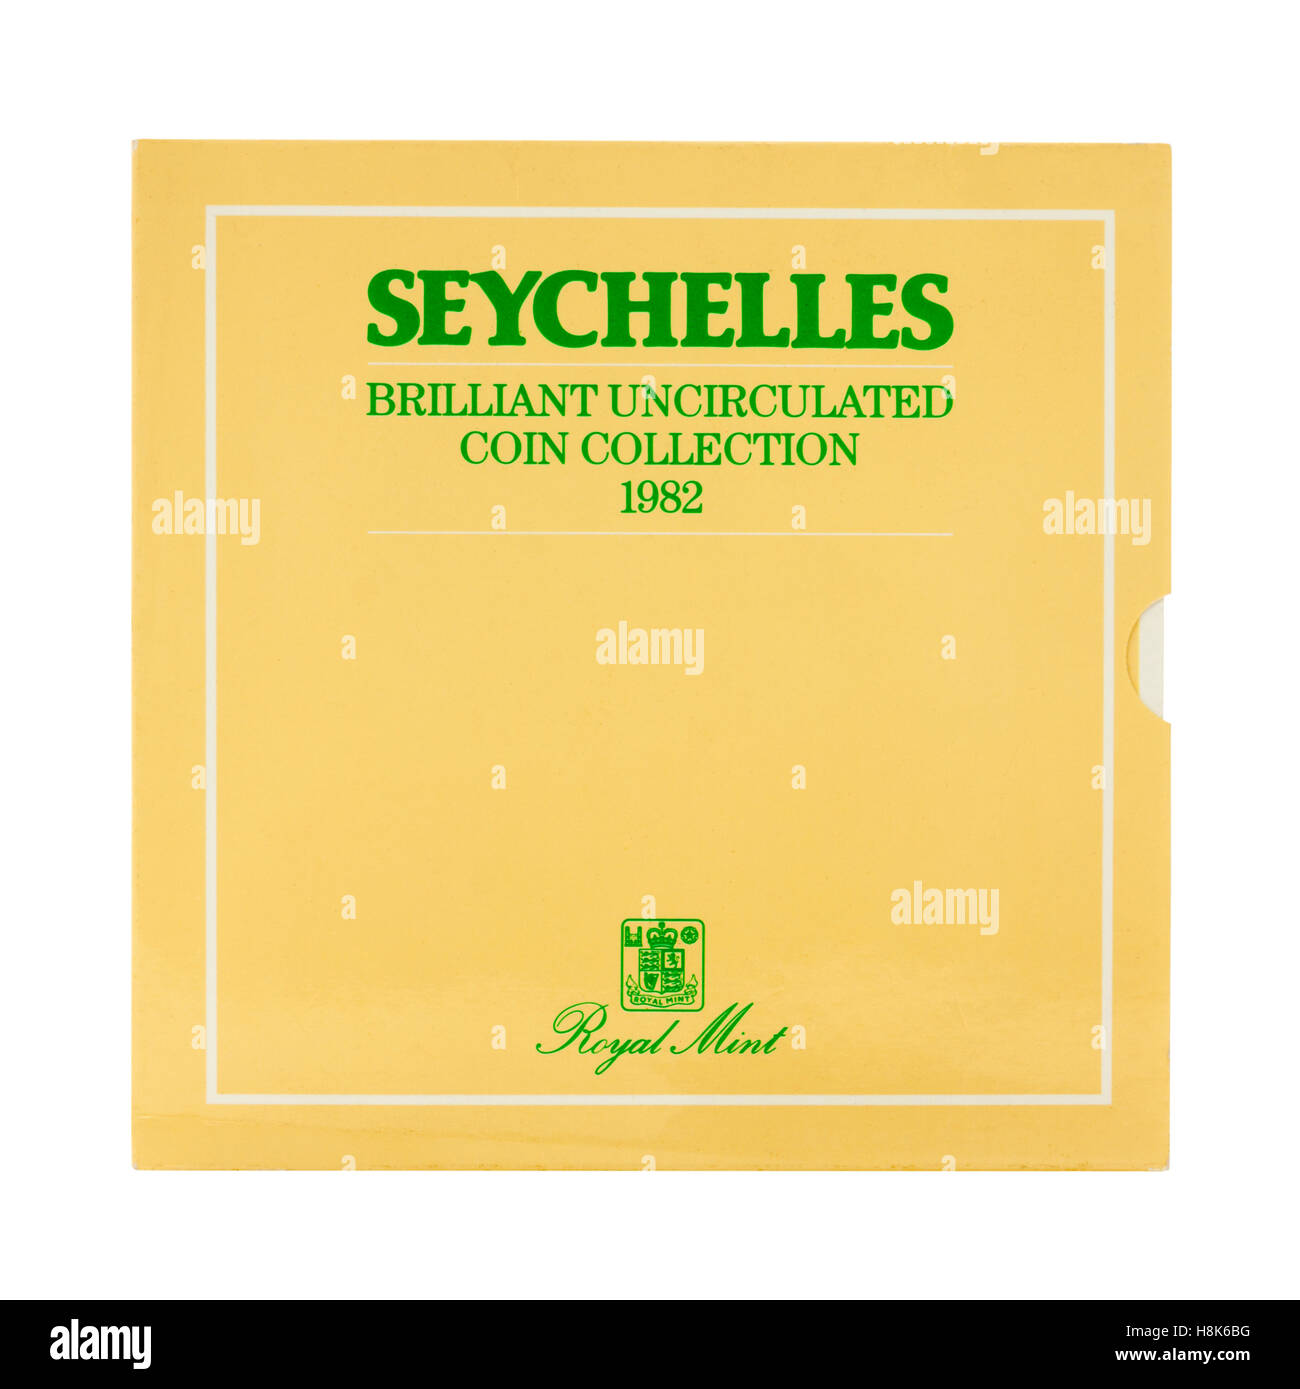 Central Bank of Seychelles set of 1982 uncirculated coins, issued by the Royal Mint - Stock Image